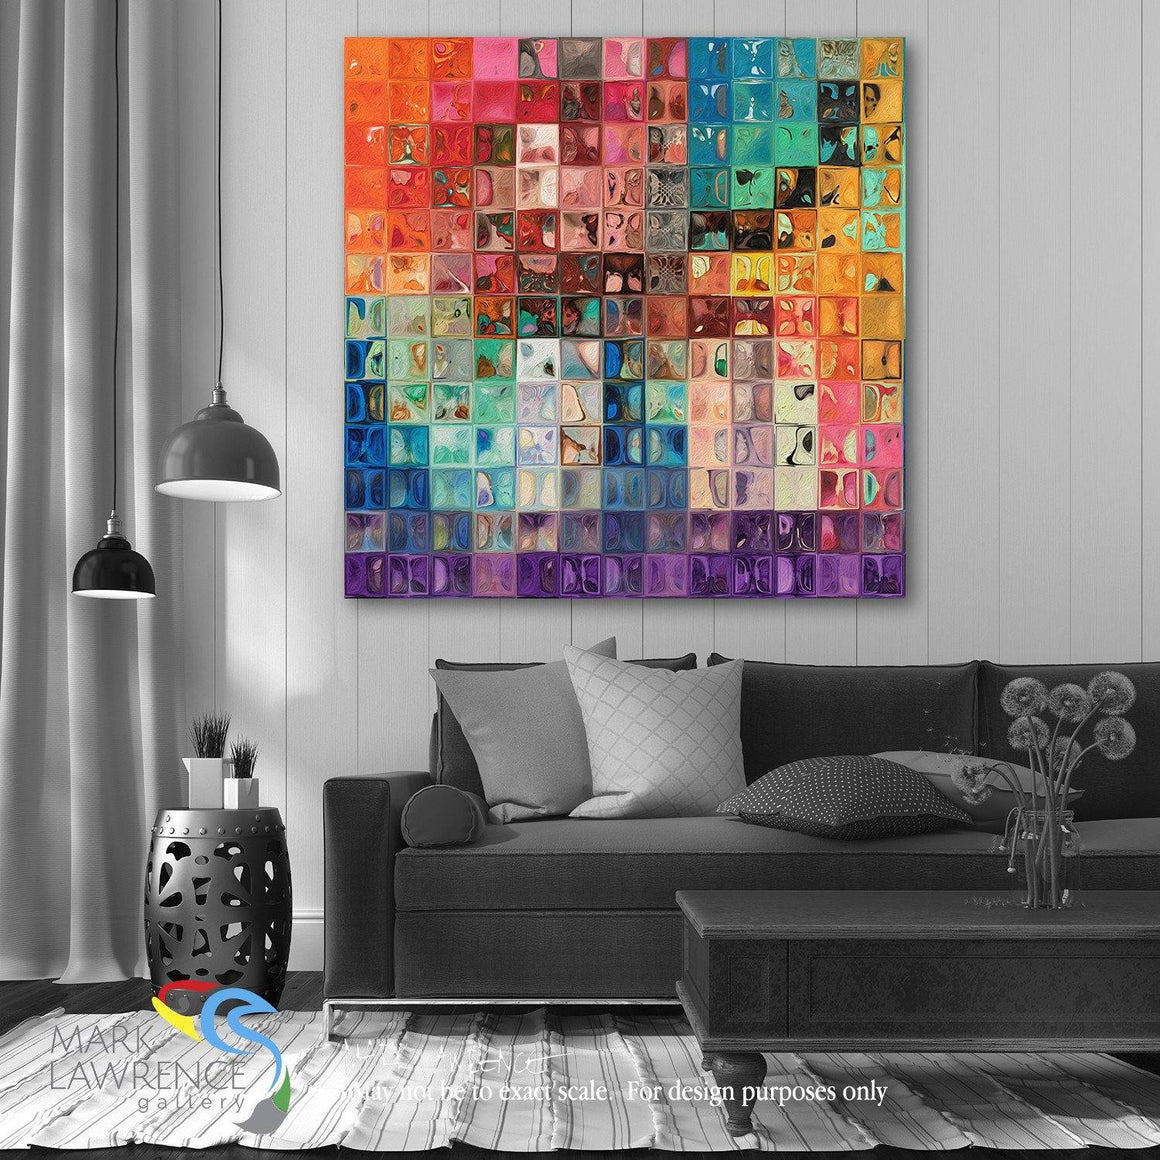 Desigher Room Art Inspiration-Rainbow Refractions Tile Art. Large format Limited Edition focal point art. Hand embellished with brush strokes and heavily textured- signed/numbered modern abstracts.